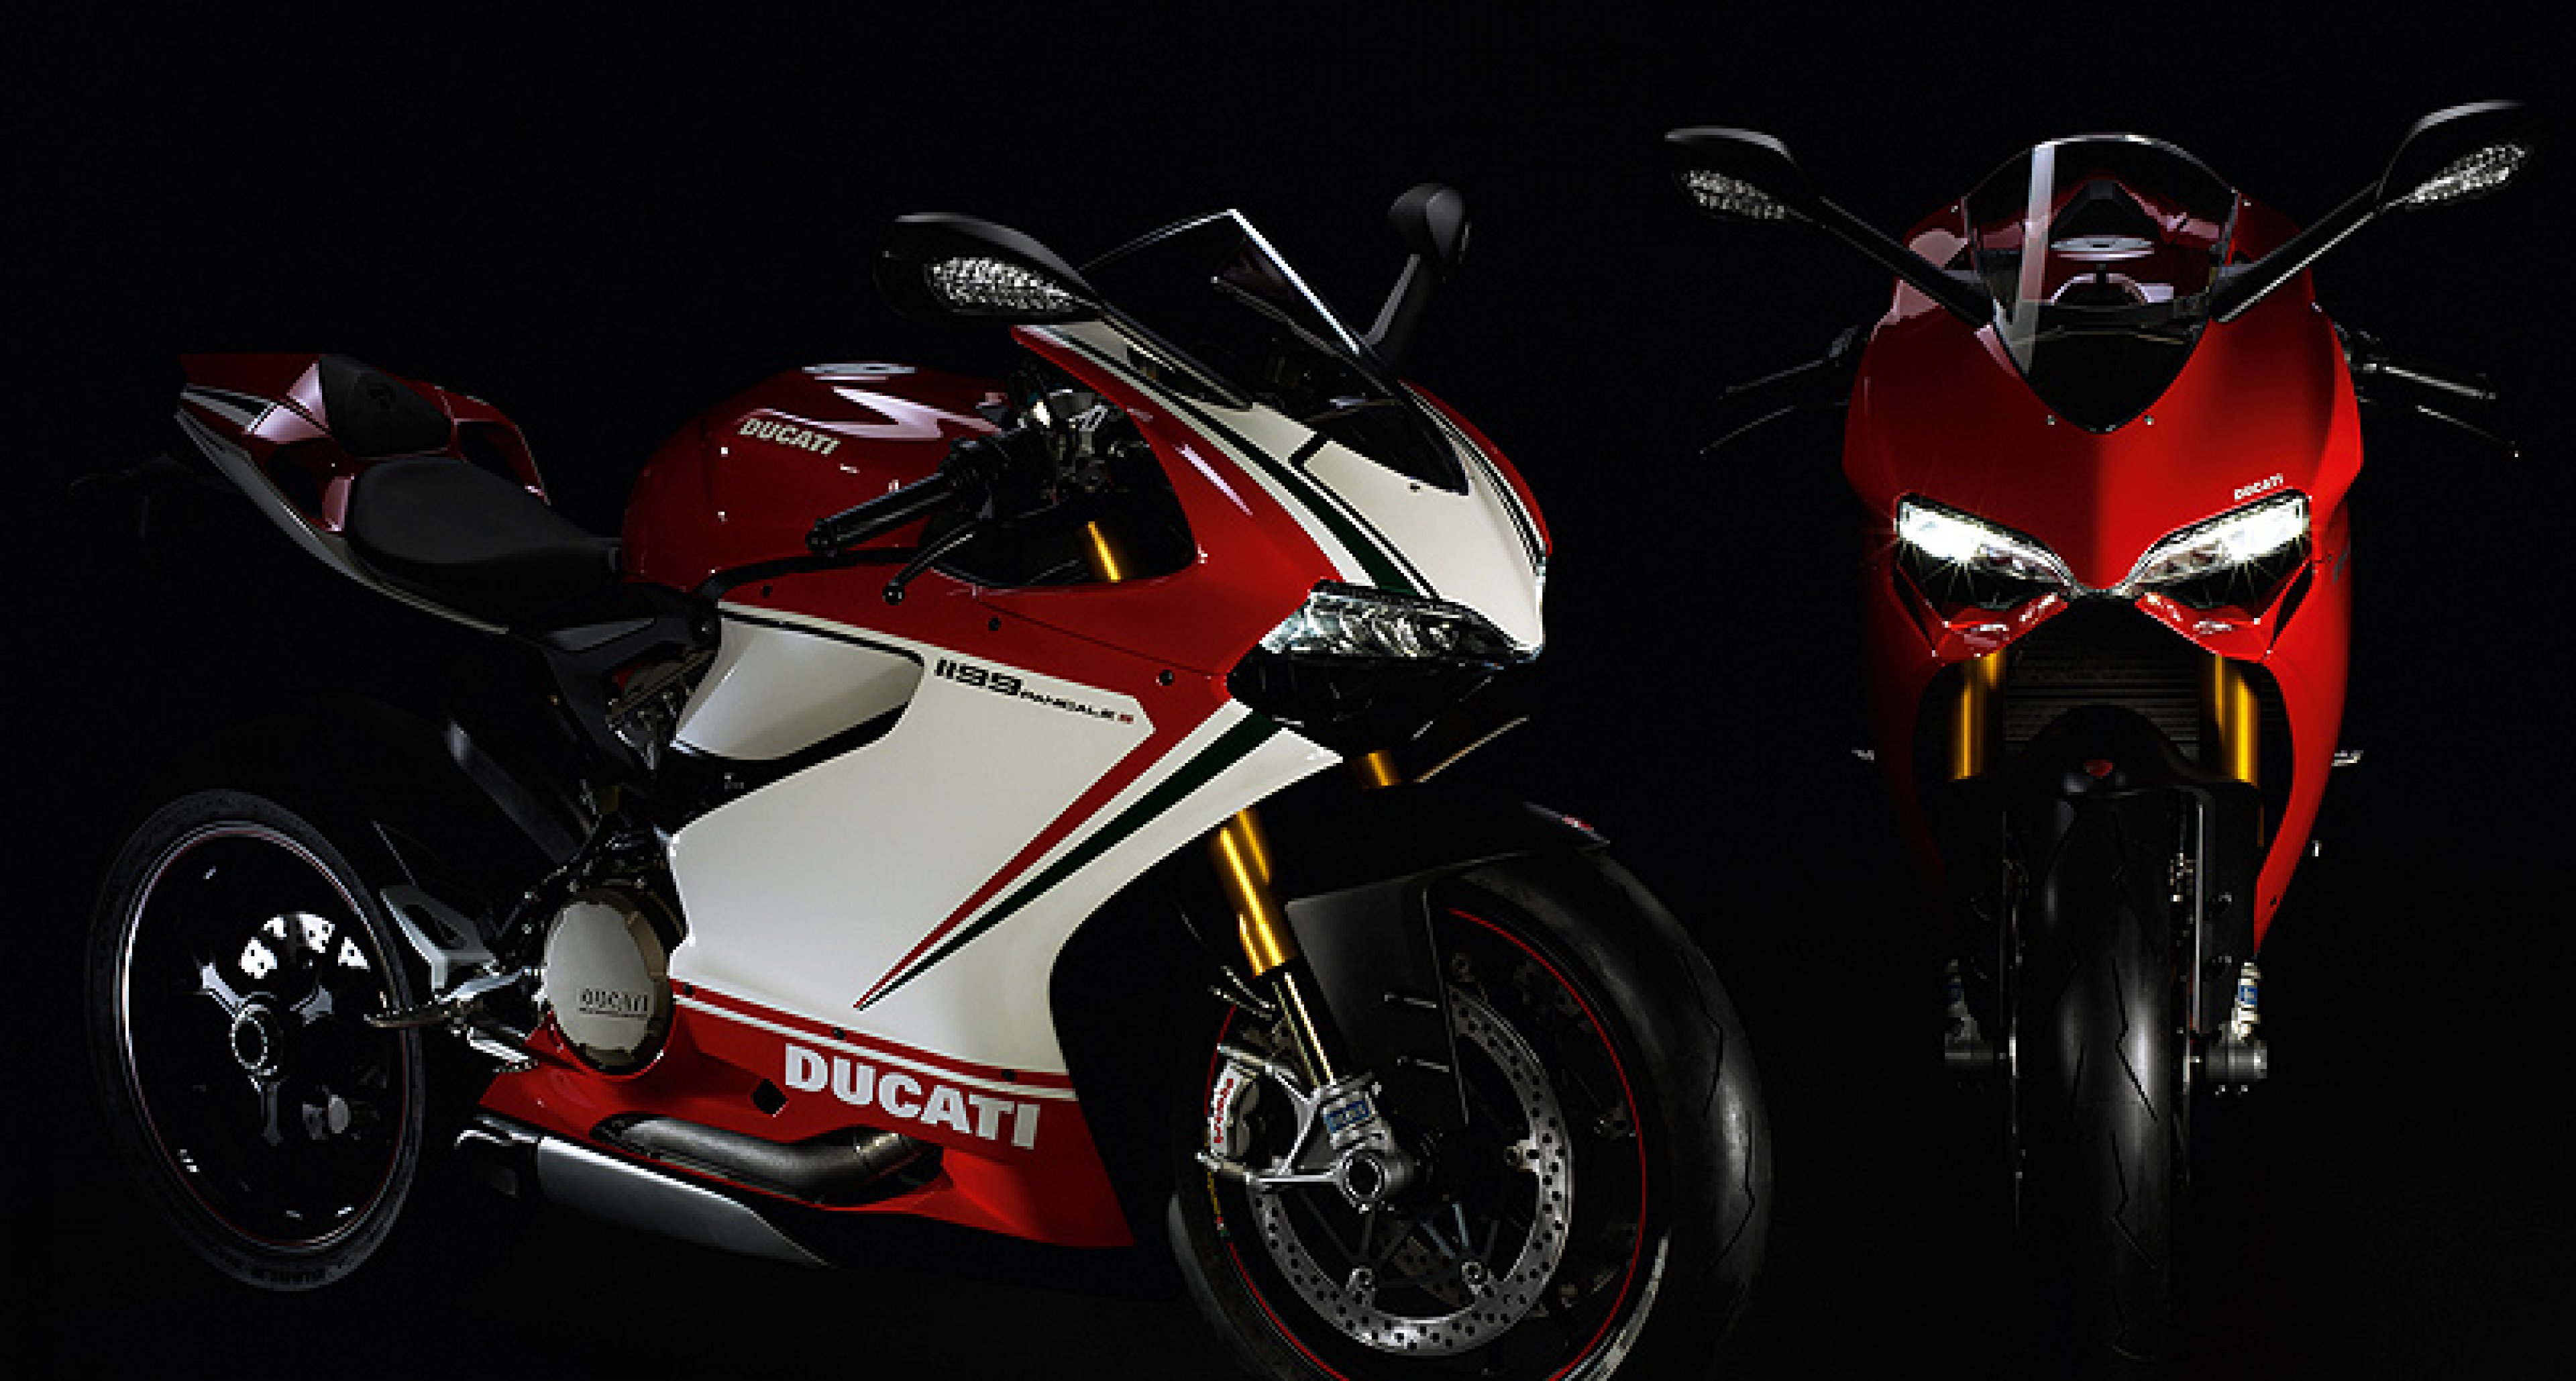 Ducati 1199 Panigale: Neues Superbike in Mailand enthüllt